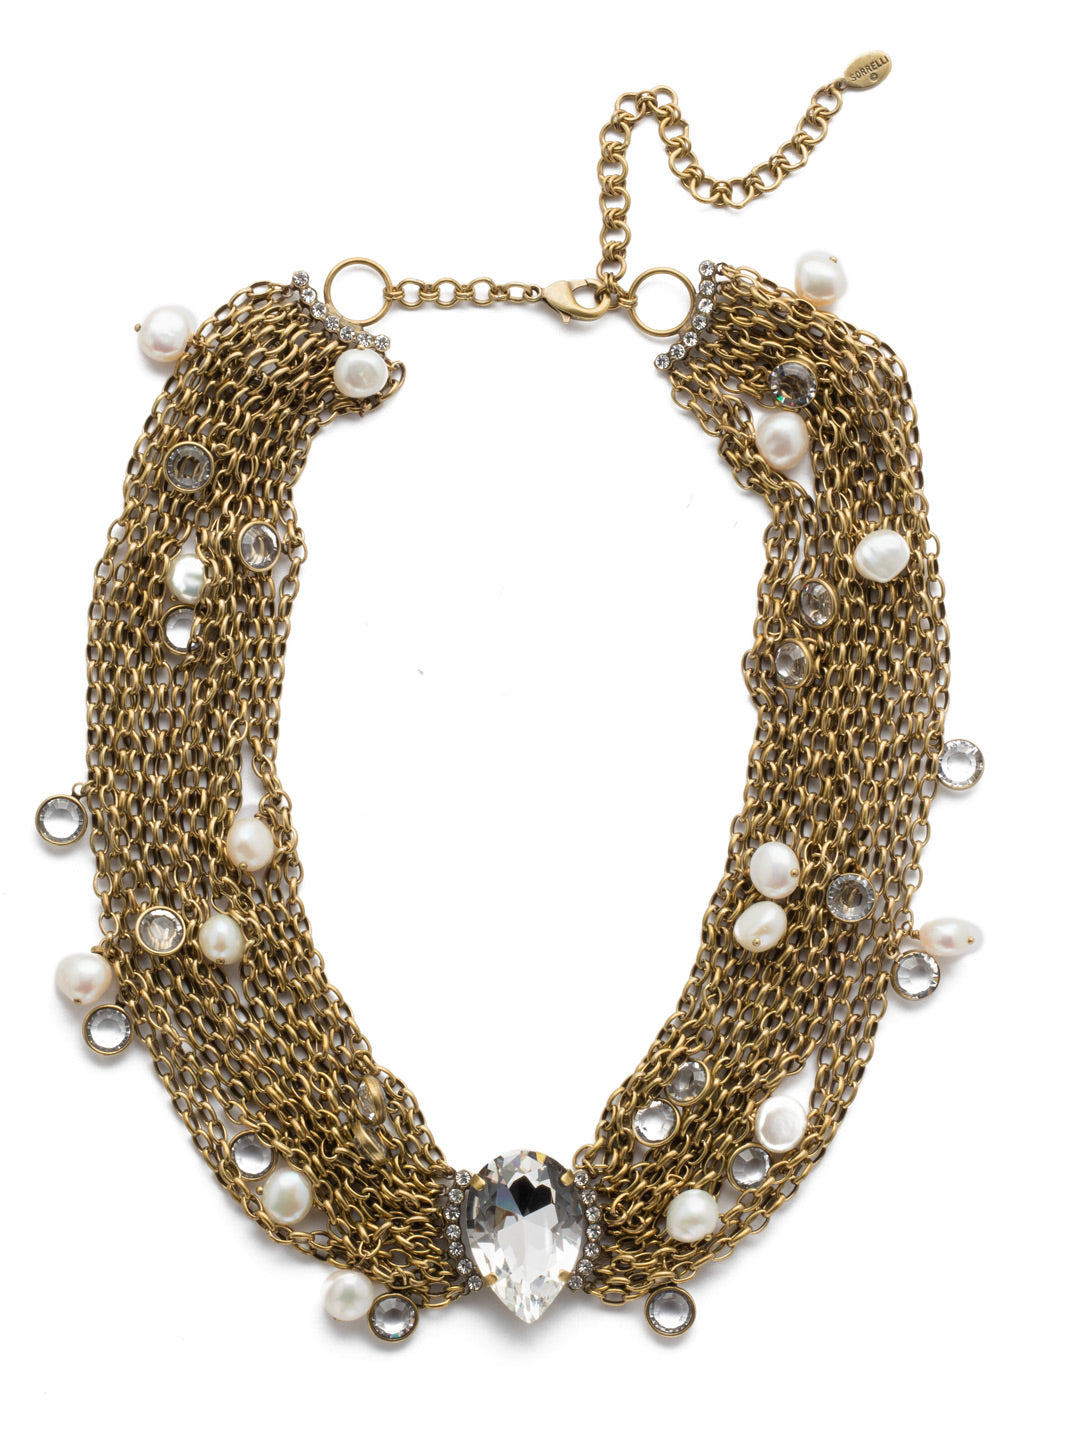 Oceane Classic Statement Necklace - 4NEF3AGCRY